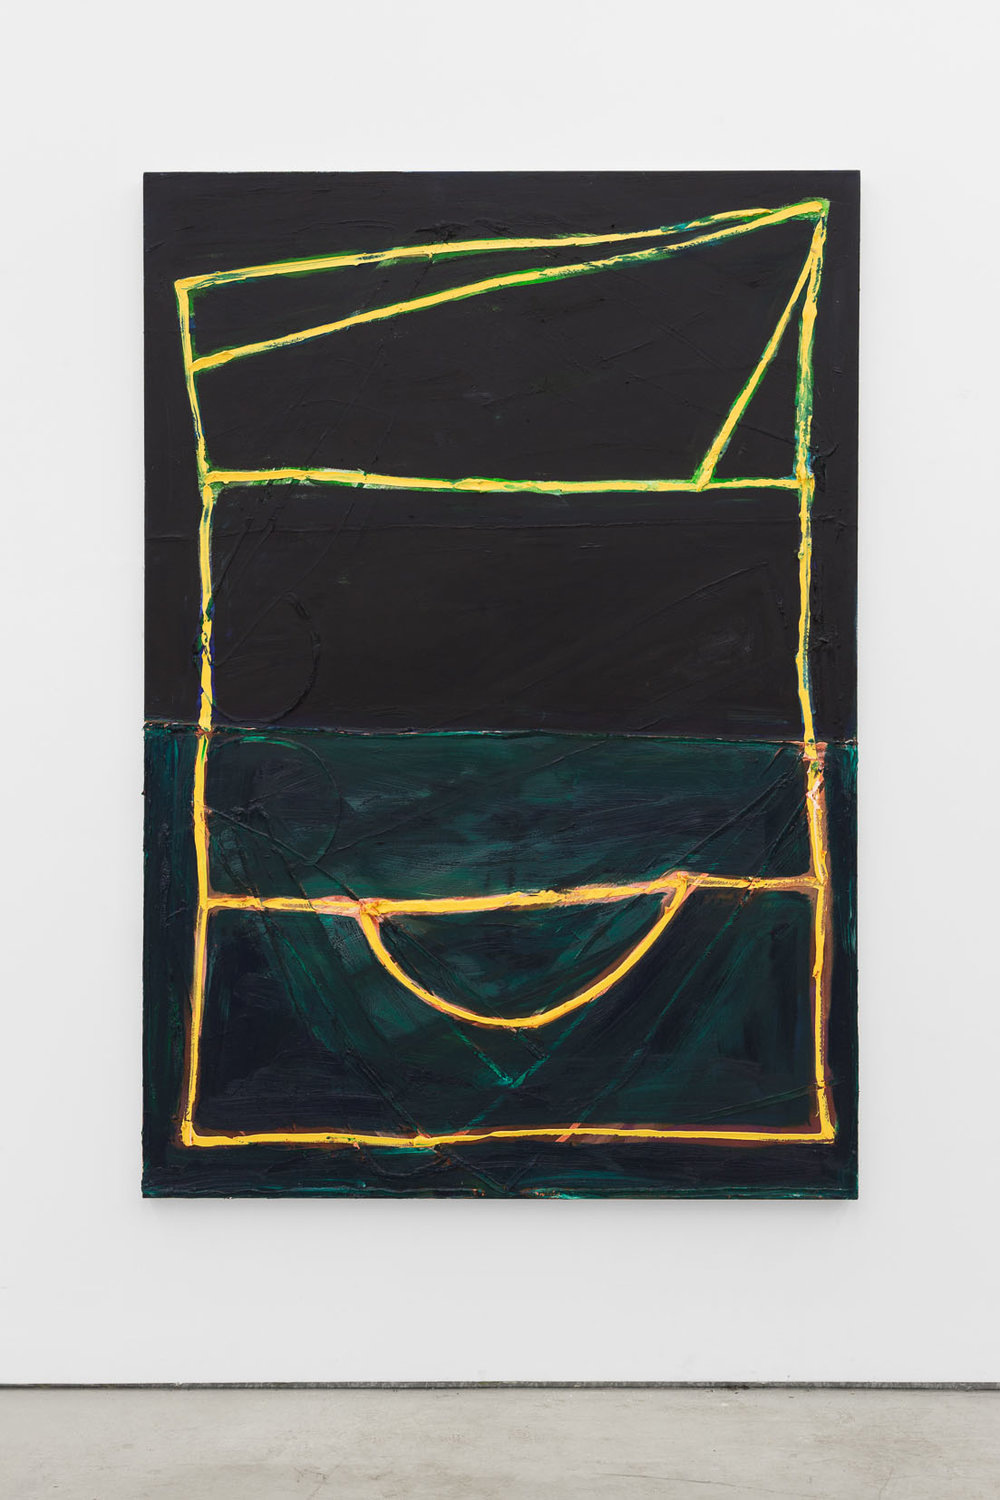 Max Ruf, Untitled (phthalo green and black, around yellow lines), 2016